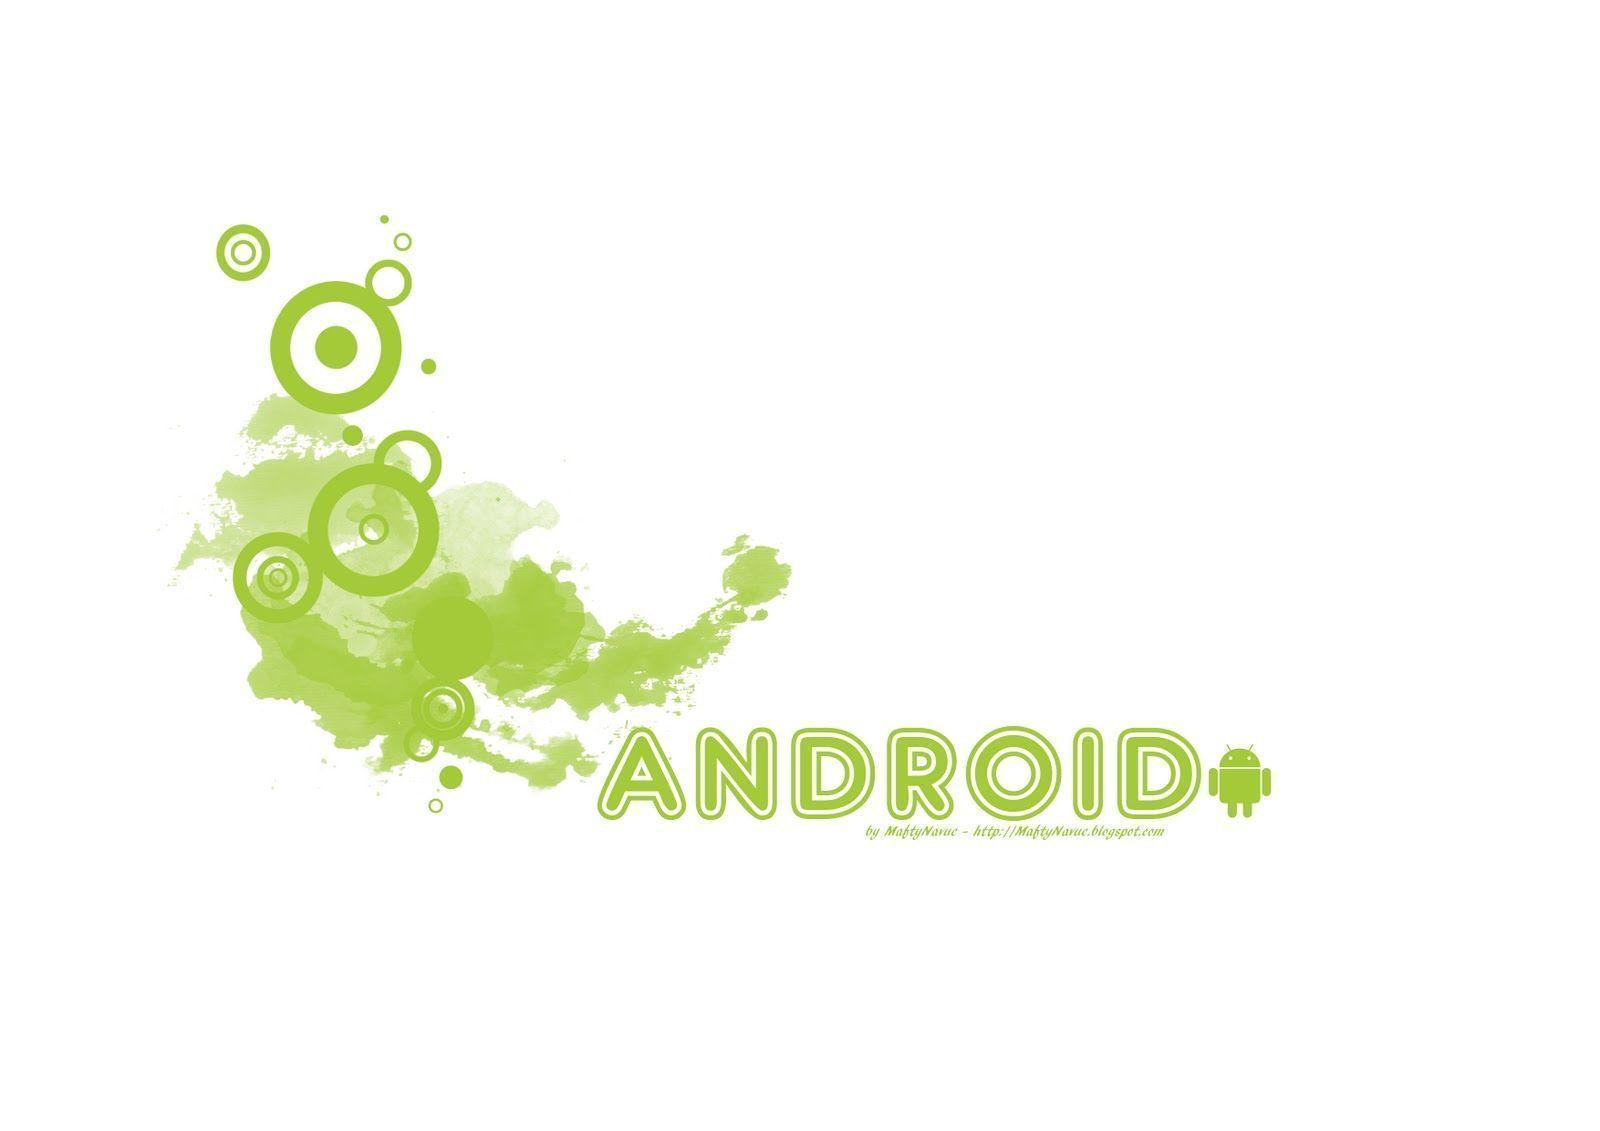 Image For > Android Logo Wallpapers Hd